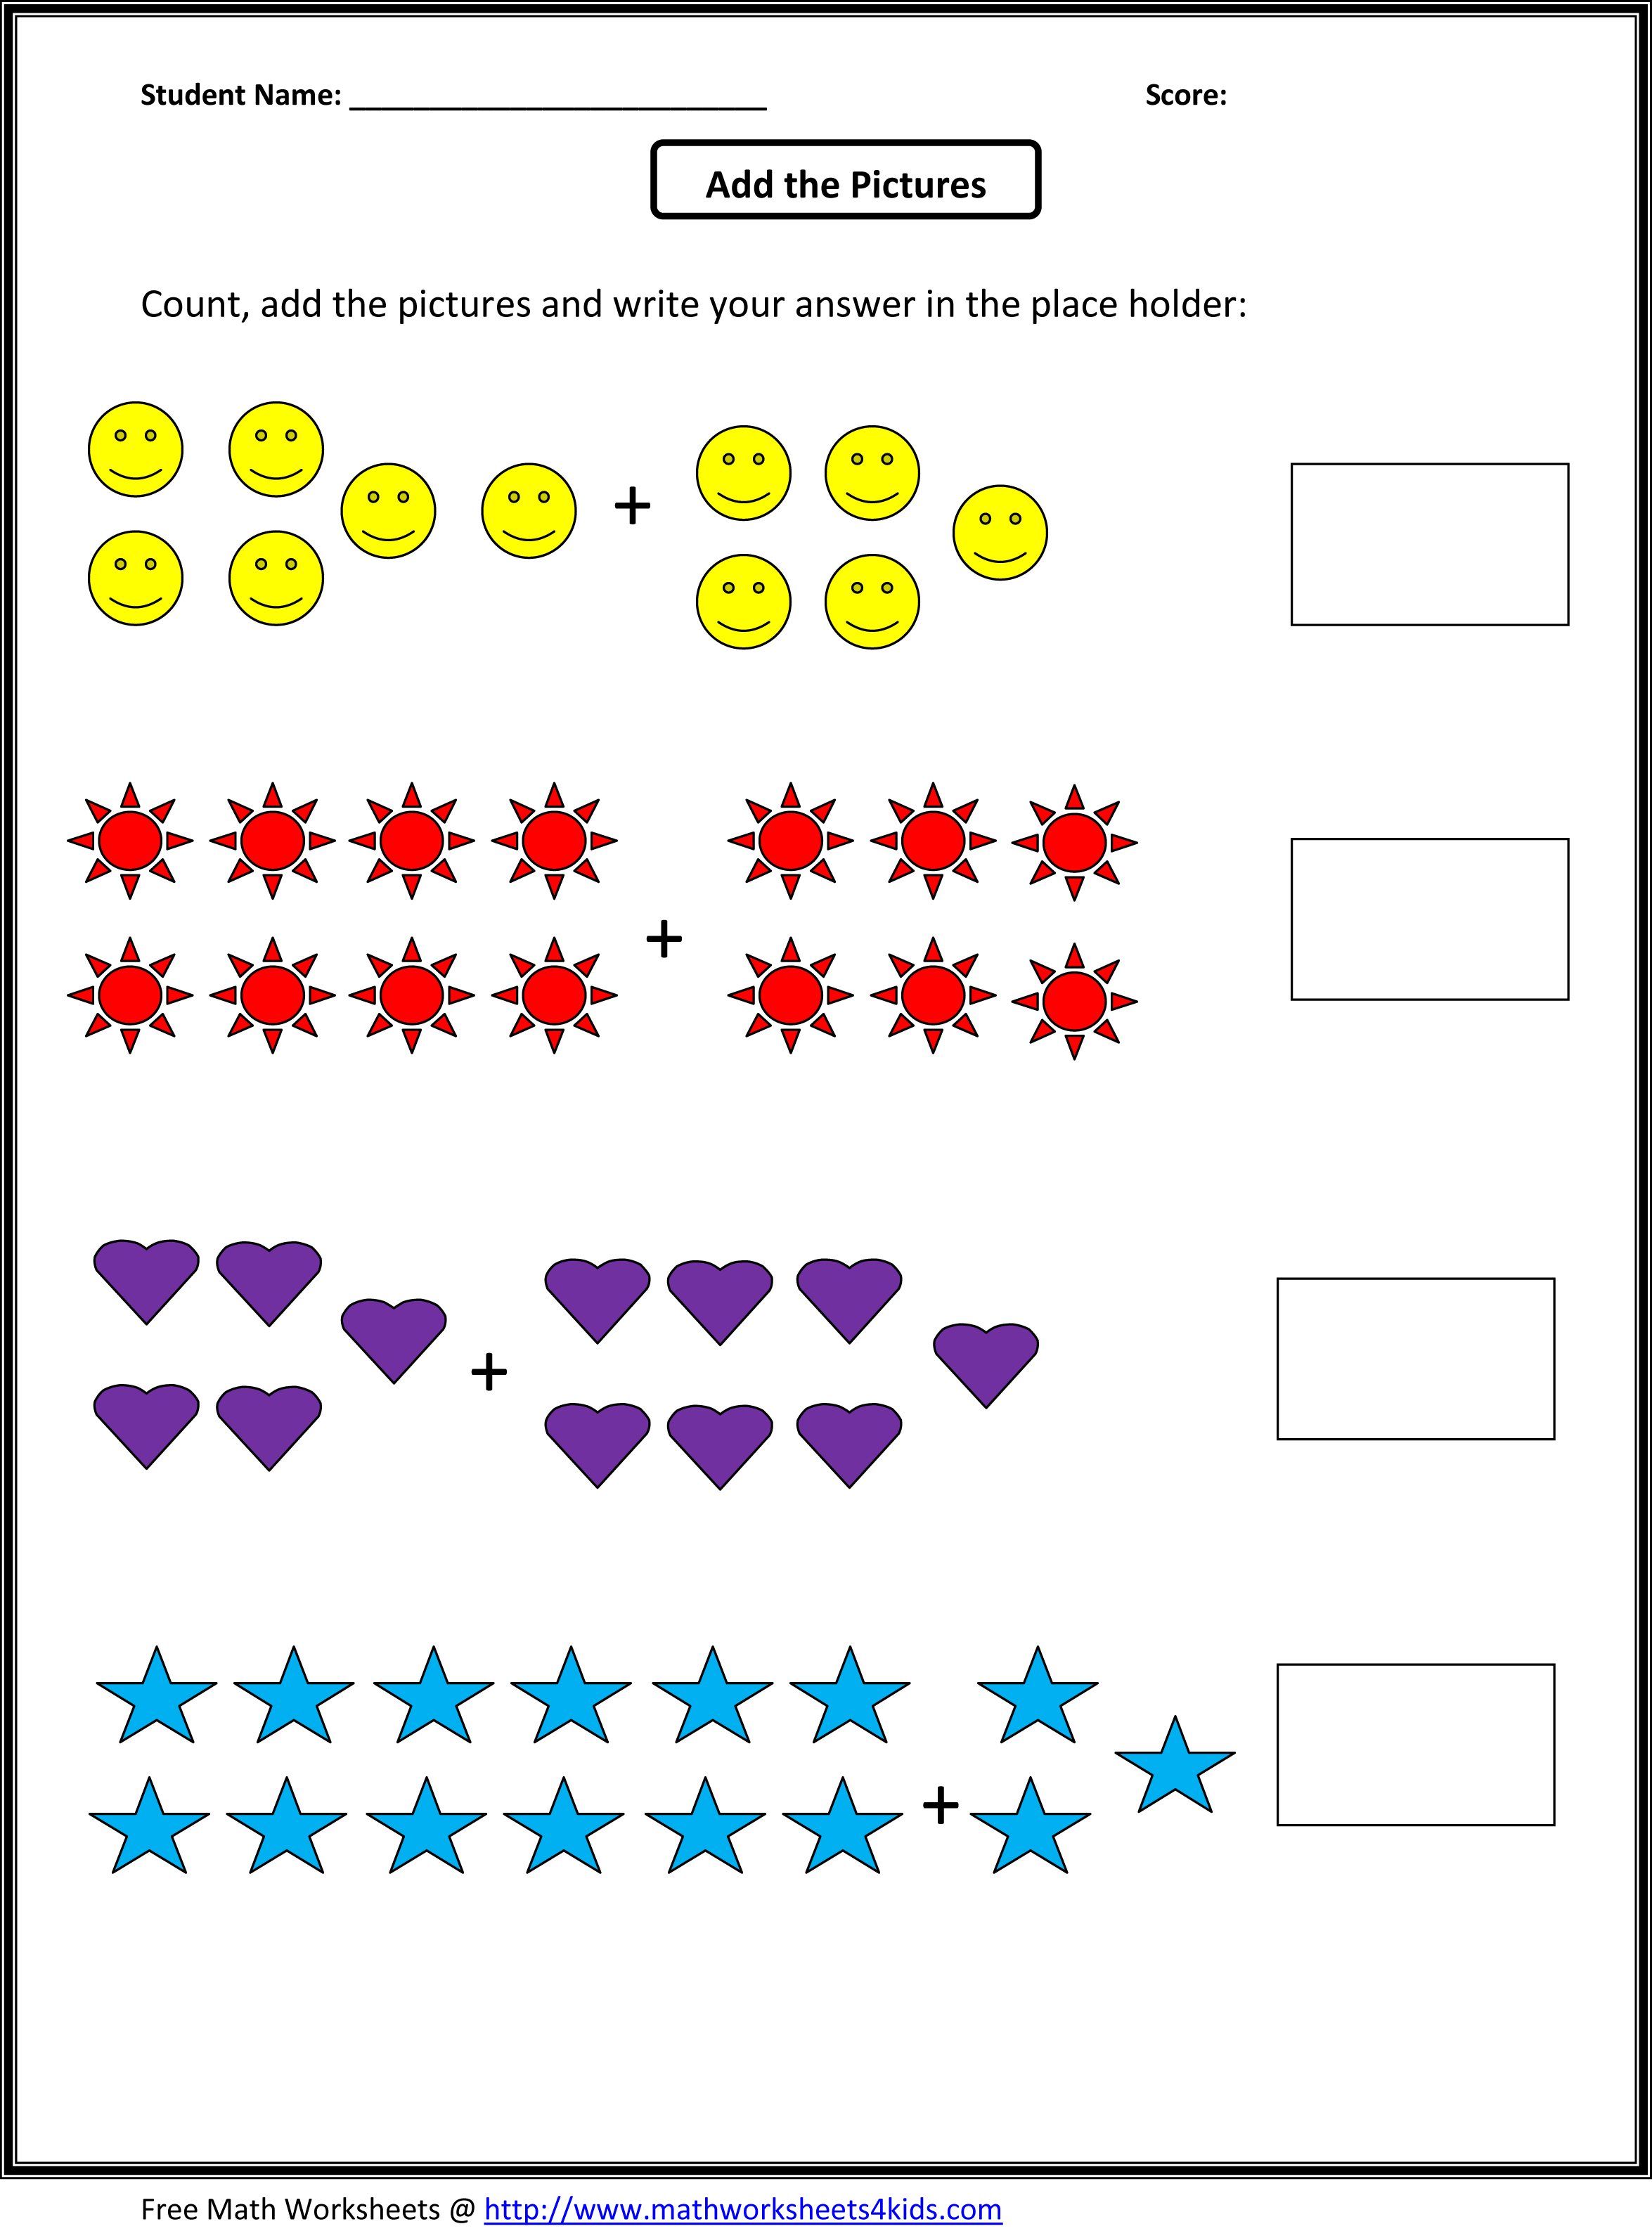 Weirdmailus  Splendid Grade  Maths Worksheet  Reocurent With Exciting Math Worksheets For St Grade Free  Reocurent With Delectable Math Worksheets For Free Also Factoring Polynomials Completely Worksheet In Addition Measurement Worksheets Grade  And Rube Goldberg Worksheet As Well As Preposition Worksheets For Kindergarten Additionally Earth Day Worksheets For Th Grade From Reocurentcom With Weirdmailus  Exciting Grade  Maths Worksheet  Reocurent With Delectable Math Worksheets For St Grade Free  Reocurent And Splendid Math Worksheets For Free Also Factoring Polynomials Completely Worksheet In Addition Measurement Worksheets Grade  From Reocurentcom